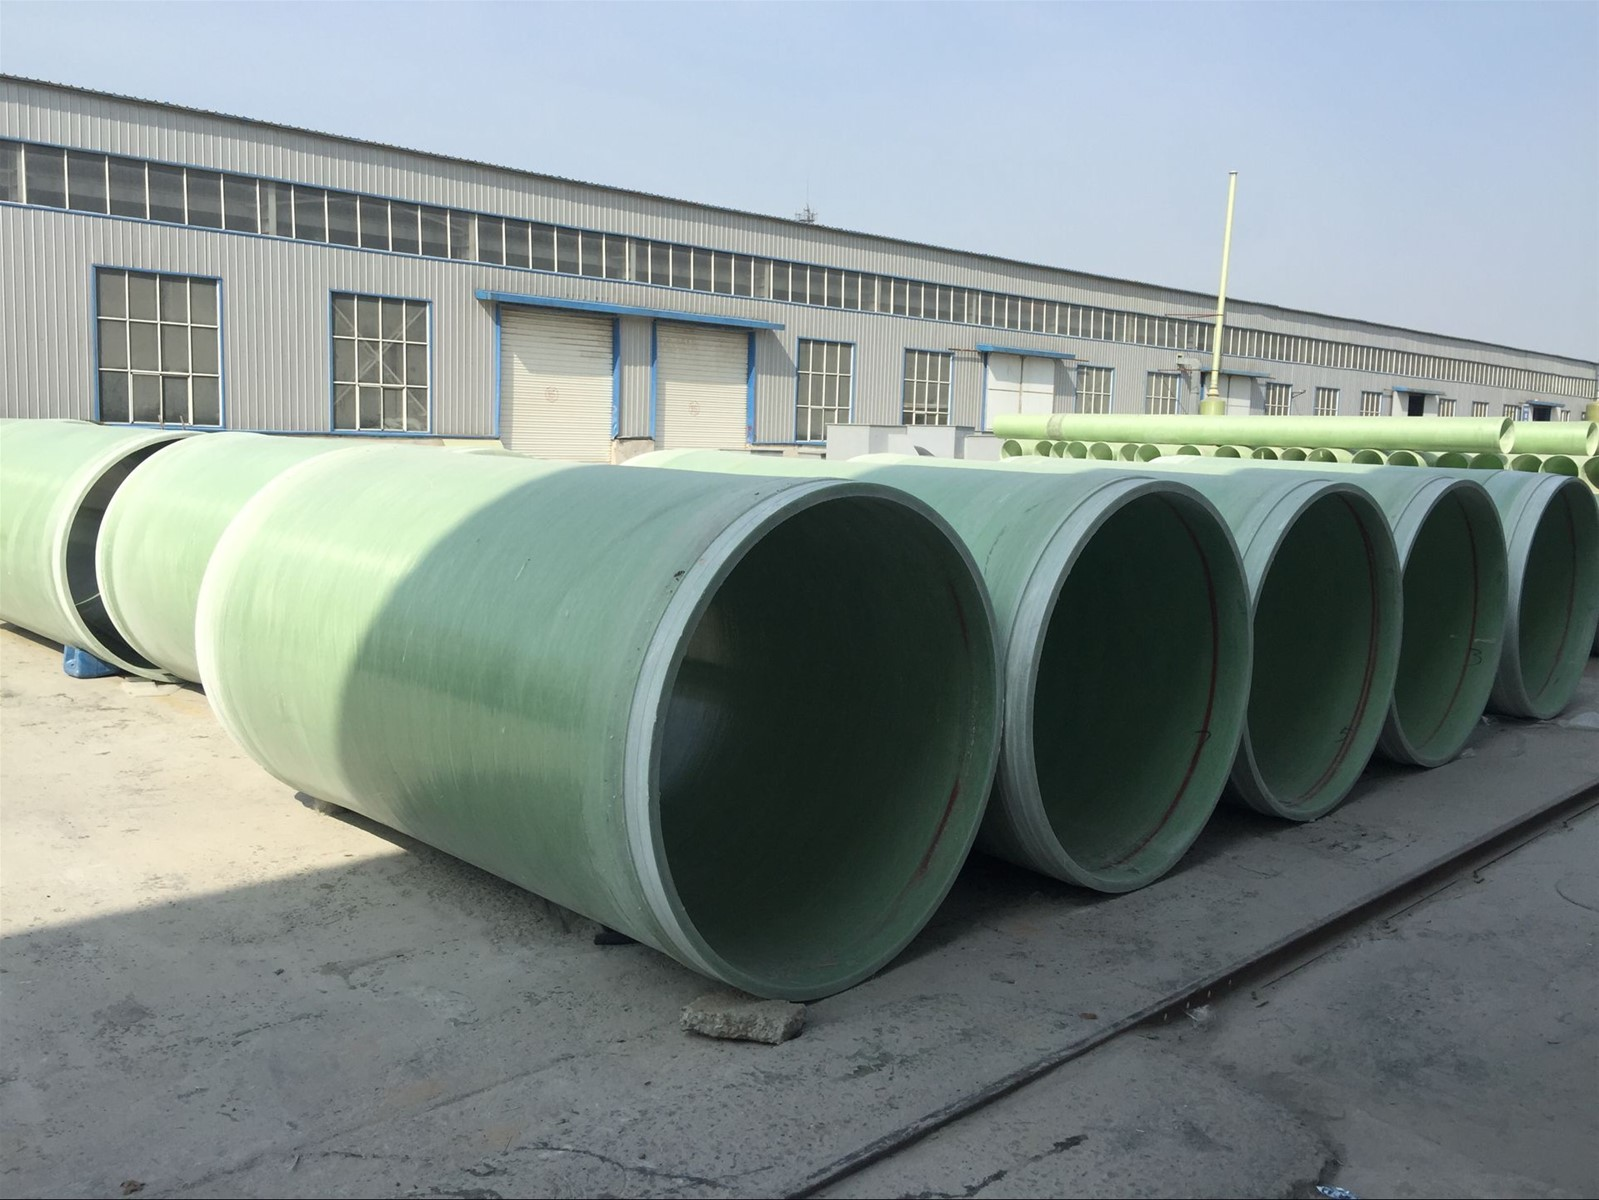 Frp sand filled pipes for underground purchasing souring